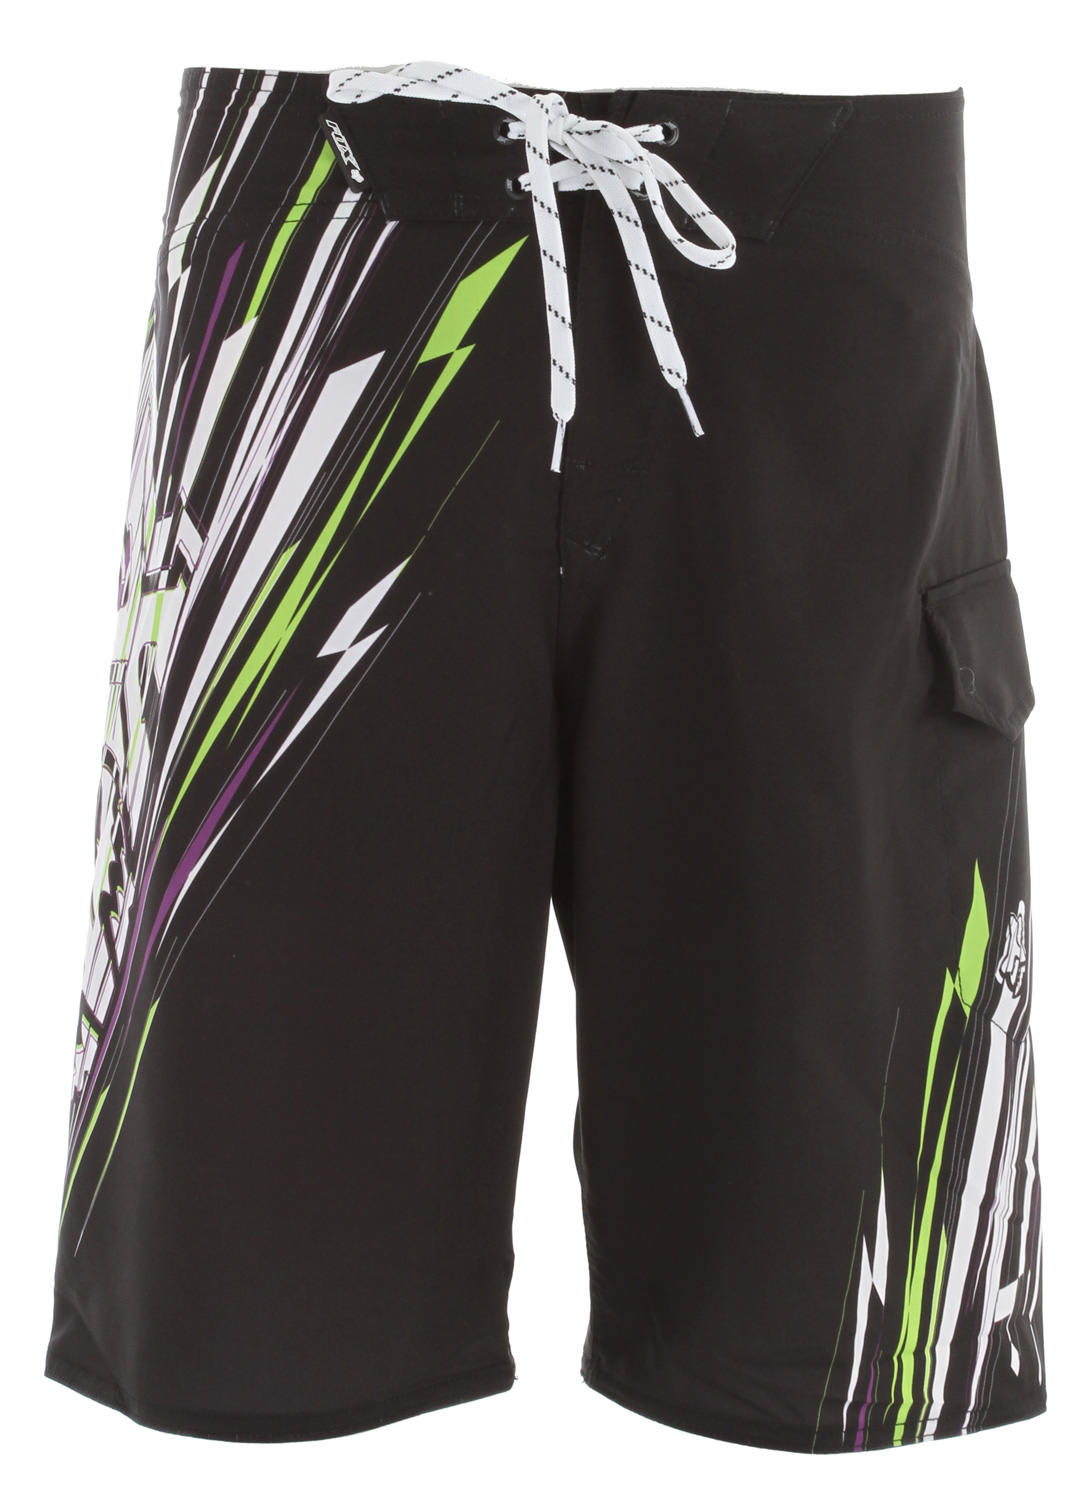 "Surf Key Features of the Fox Showdown Boardshorts: 100% polyester mesh stretch All over sublimated graphics Side pocket Velcro fly 22 1/2"" outseam - $34.95"